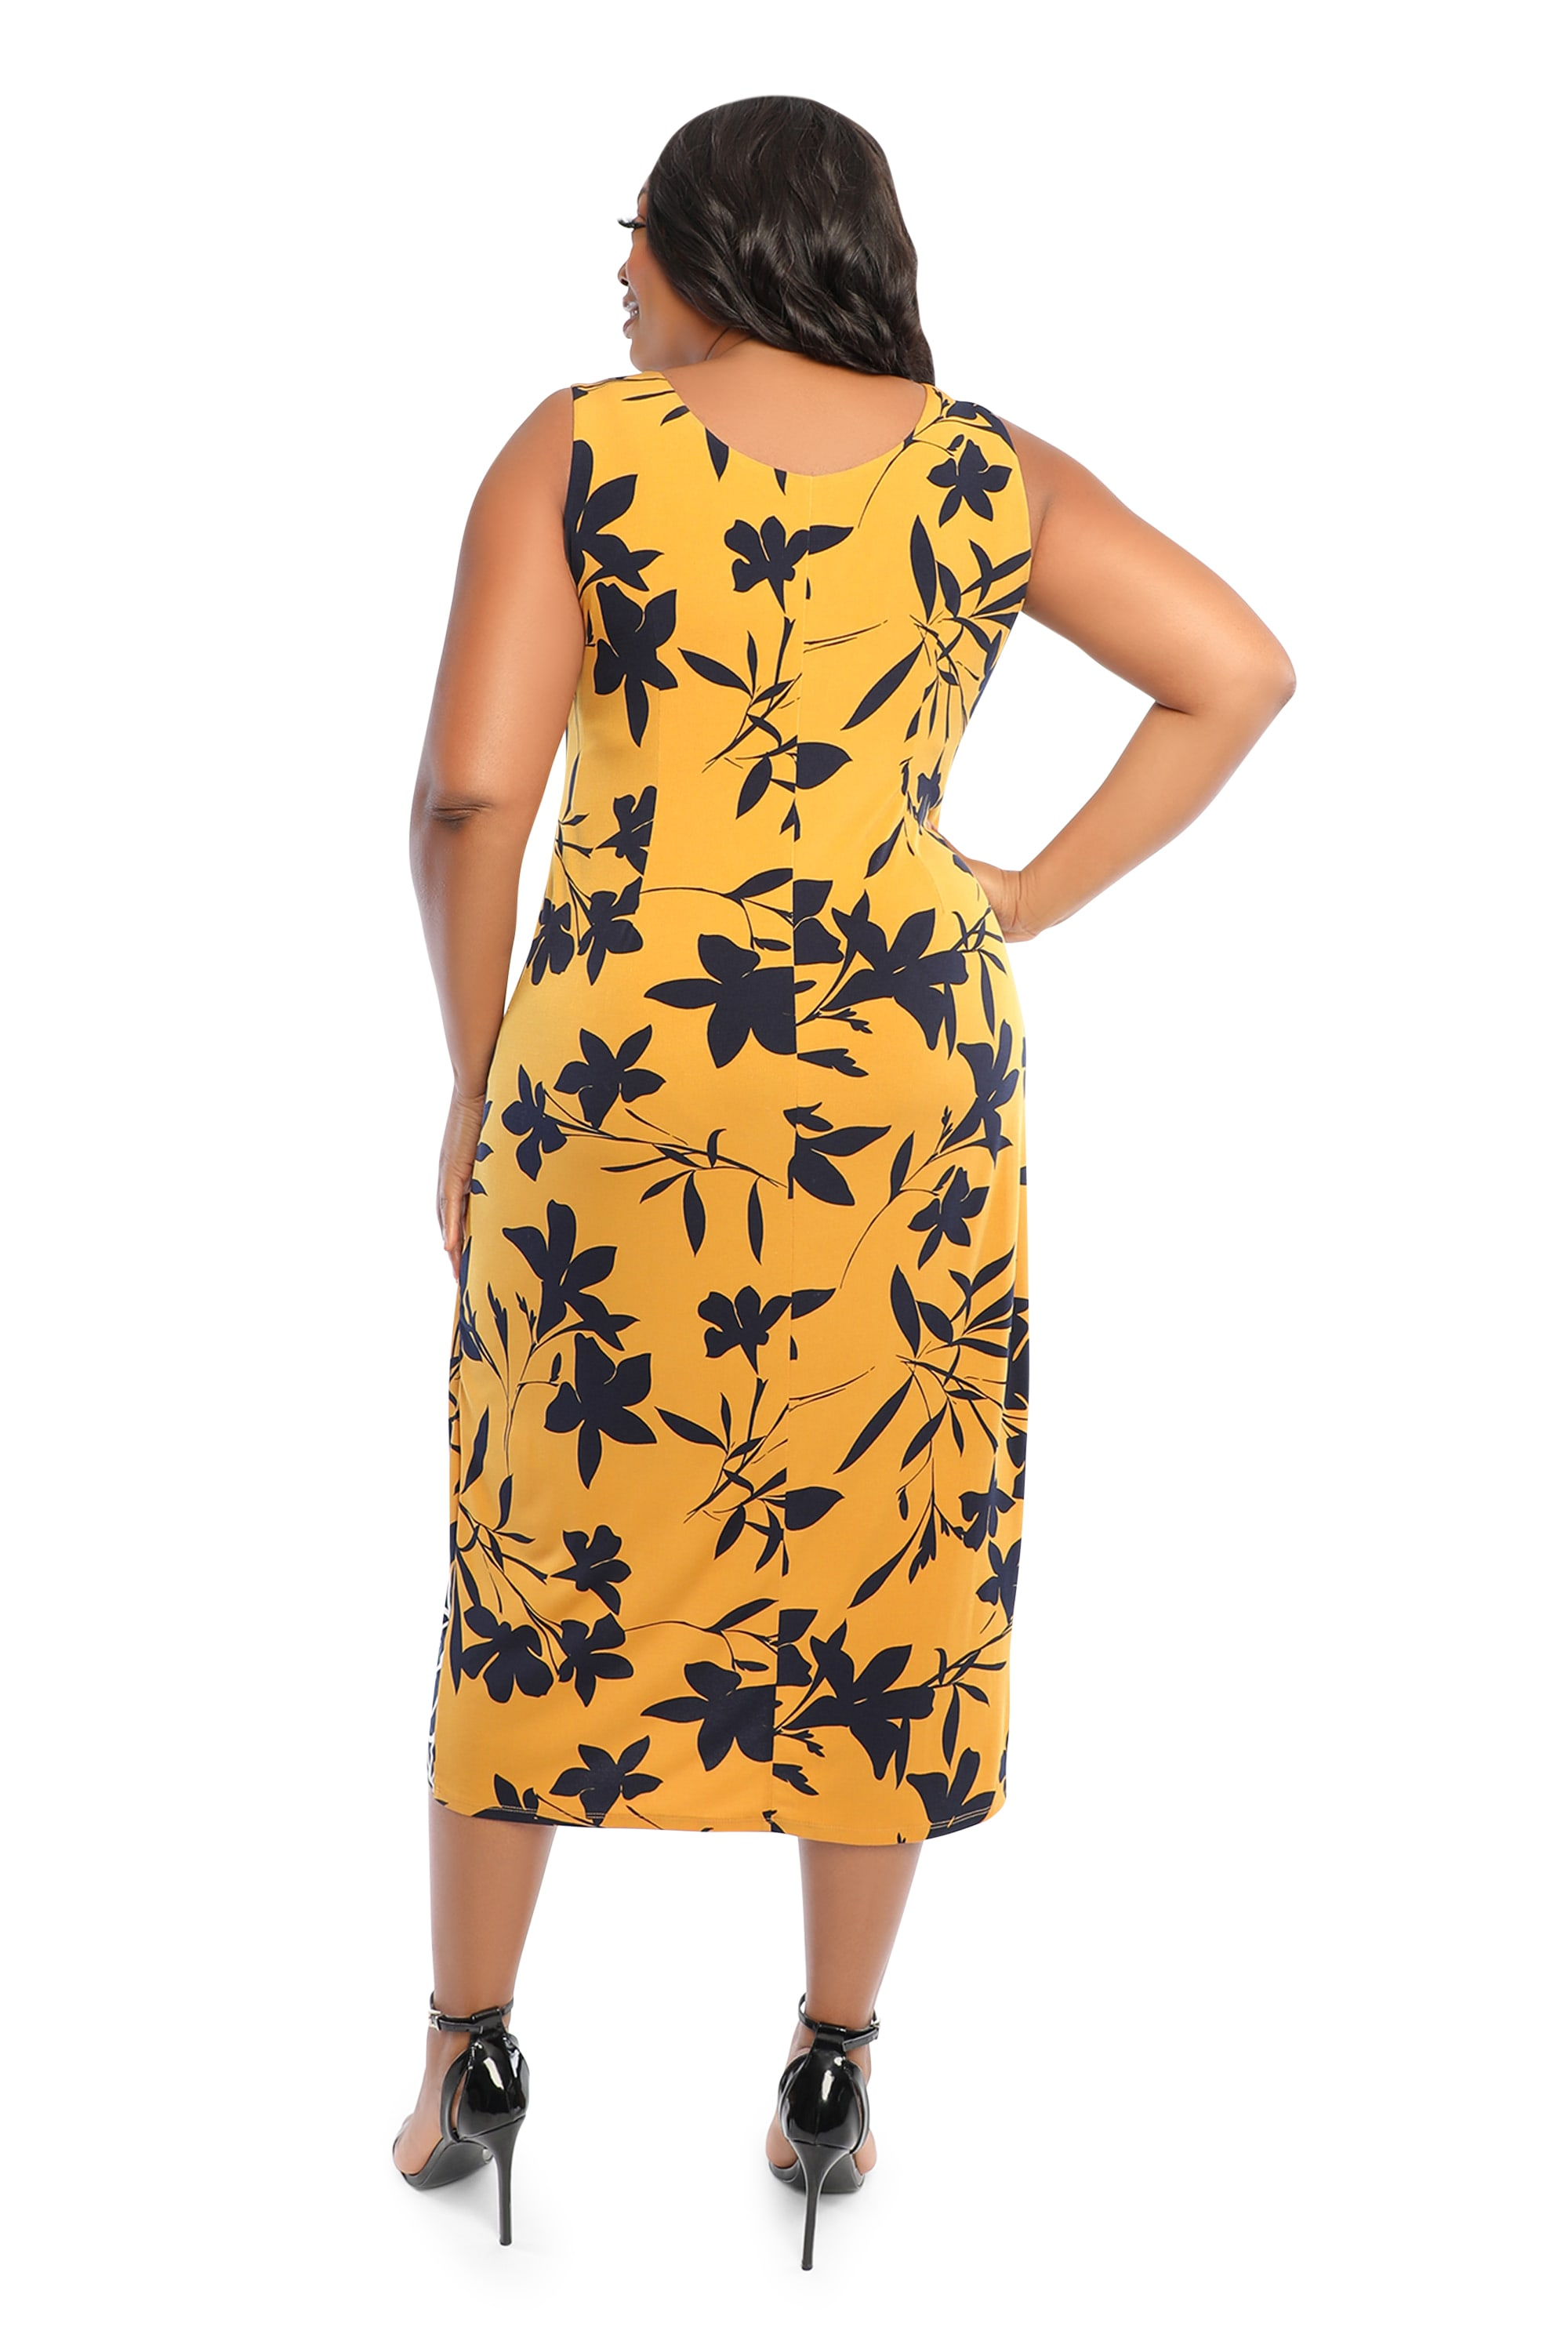 Border Print Tank Dress - Plus - gold/navy - Back